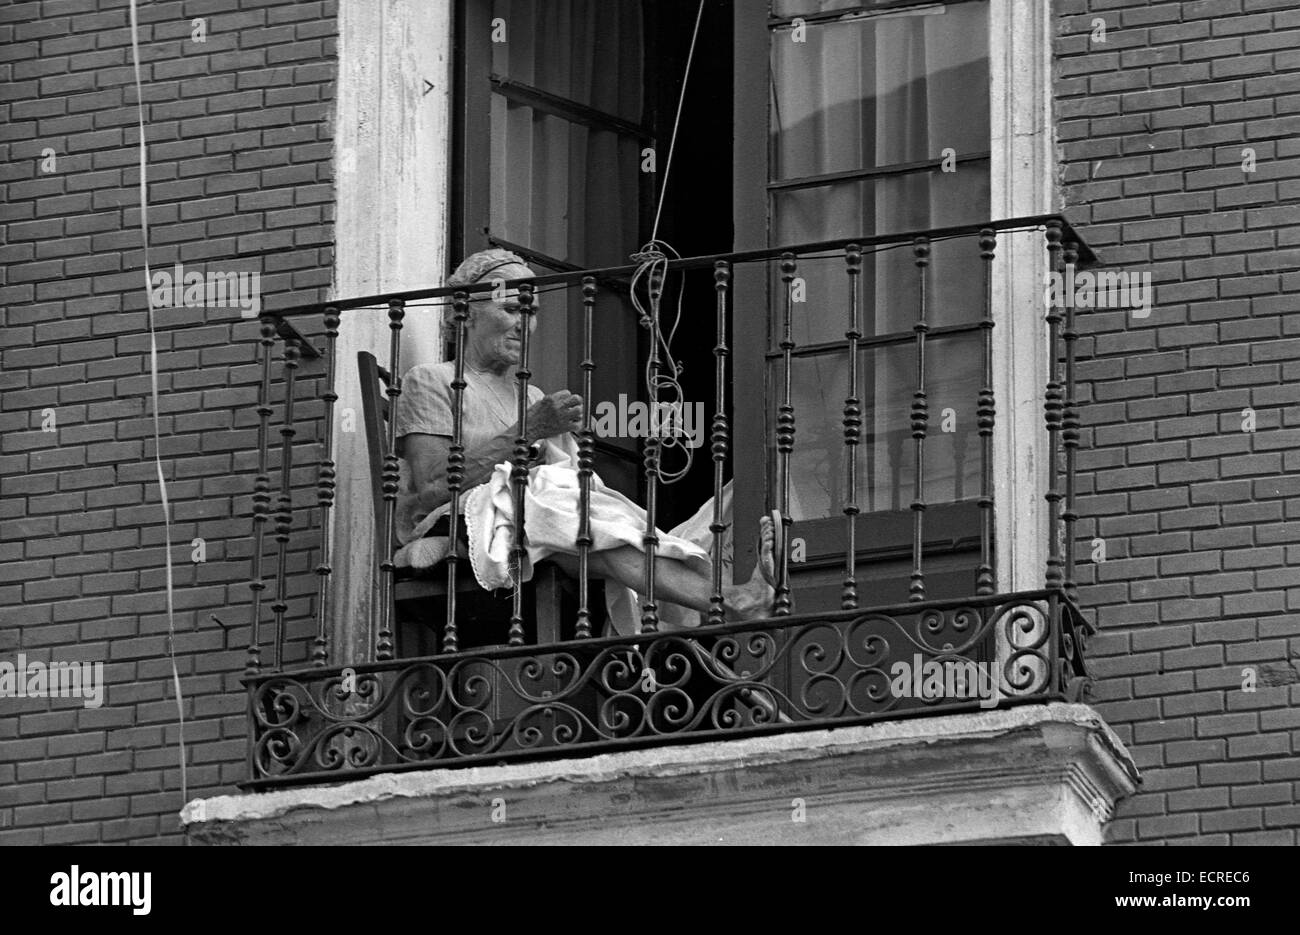 An Elderly Woman Sewing On The Balcony Of His House To Avoid Heat On July,  1979 In Valladolid, Spain